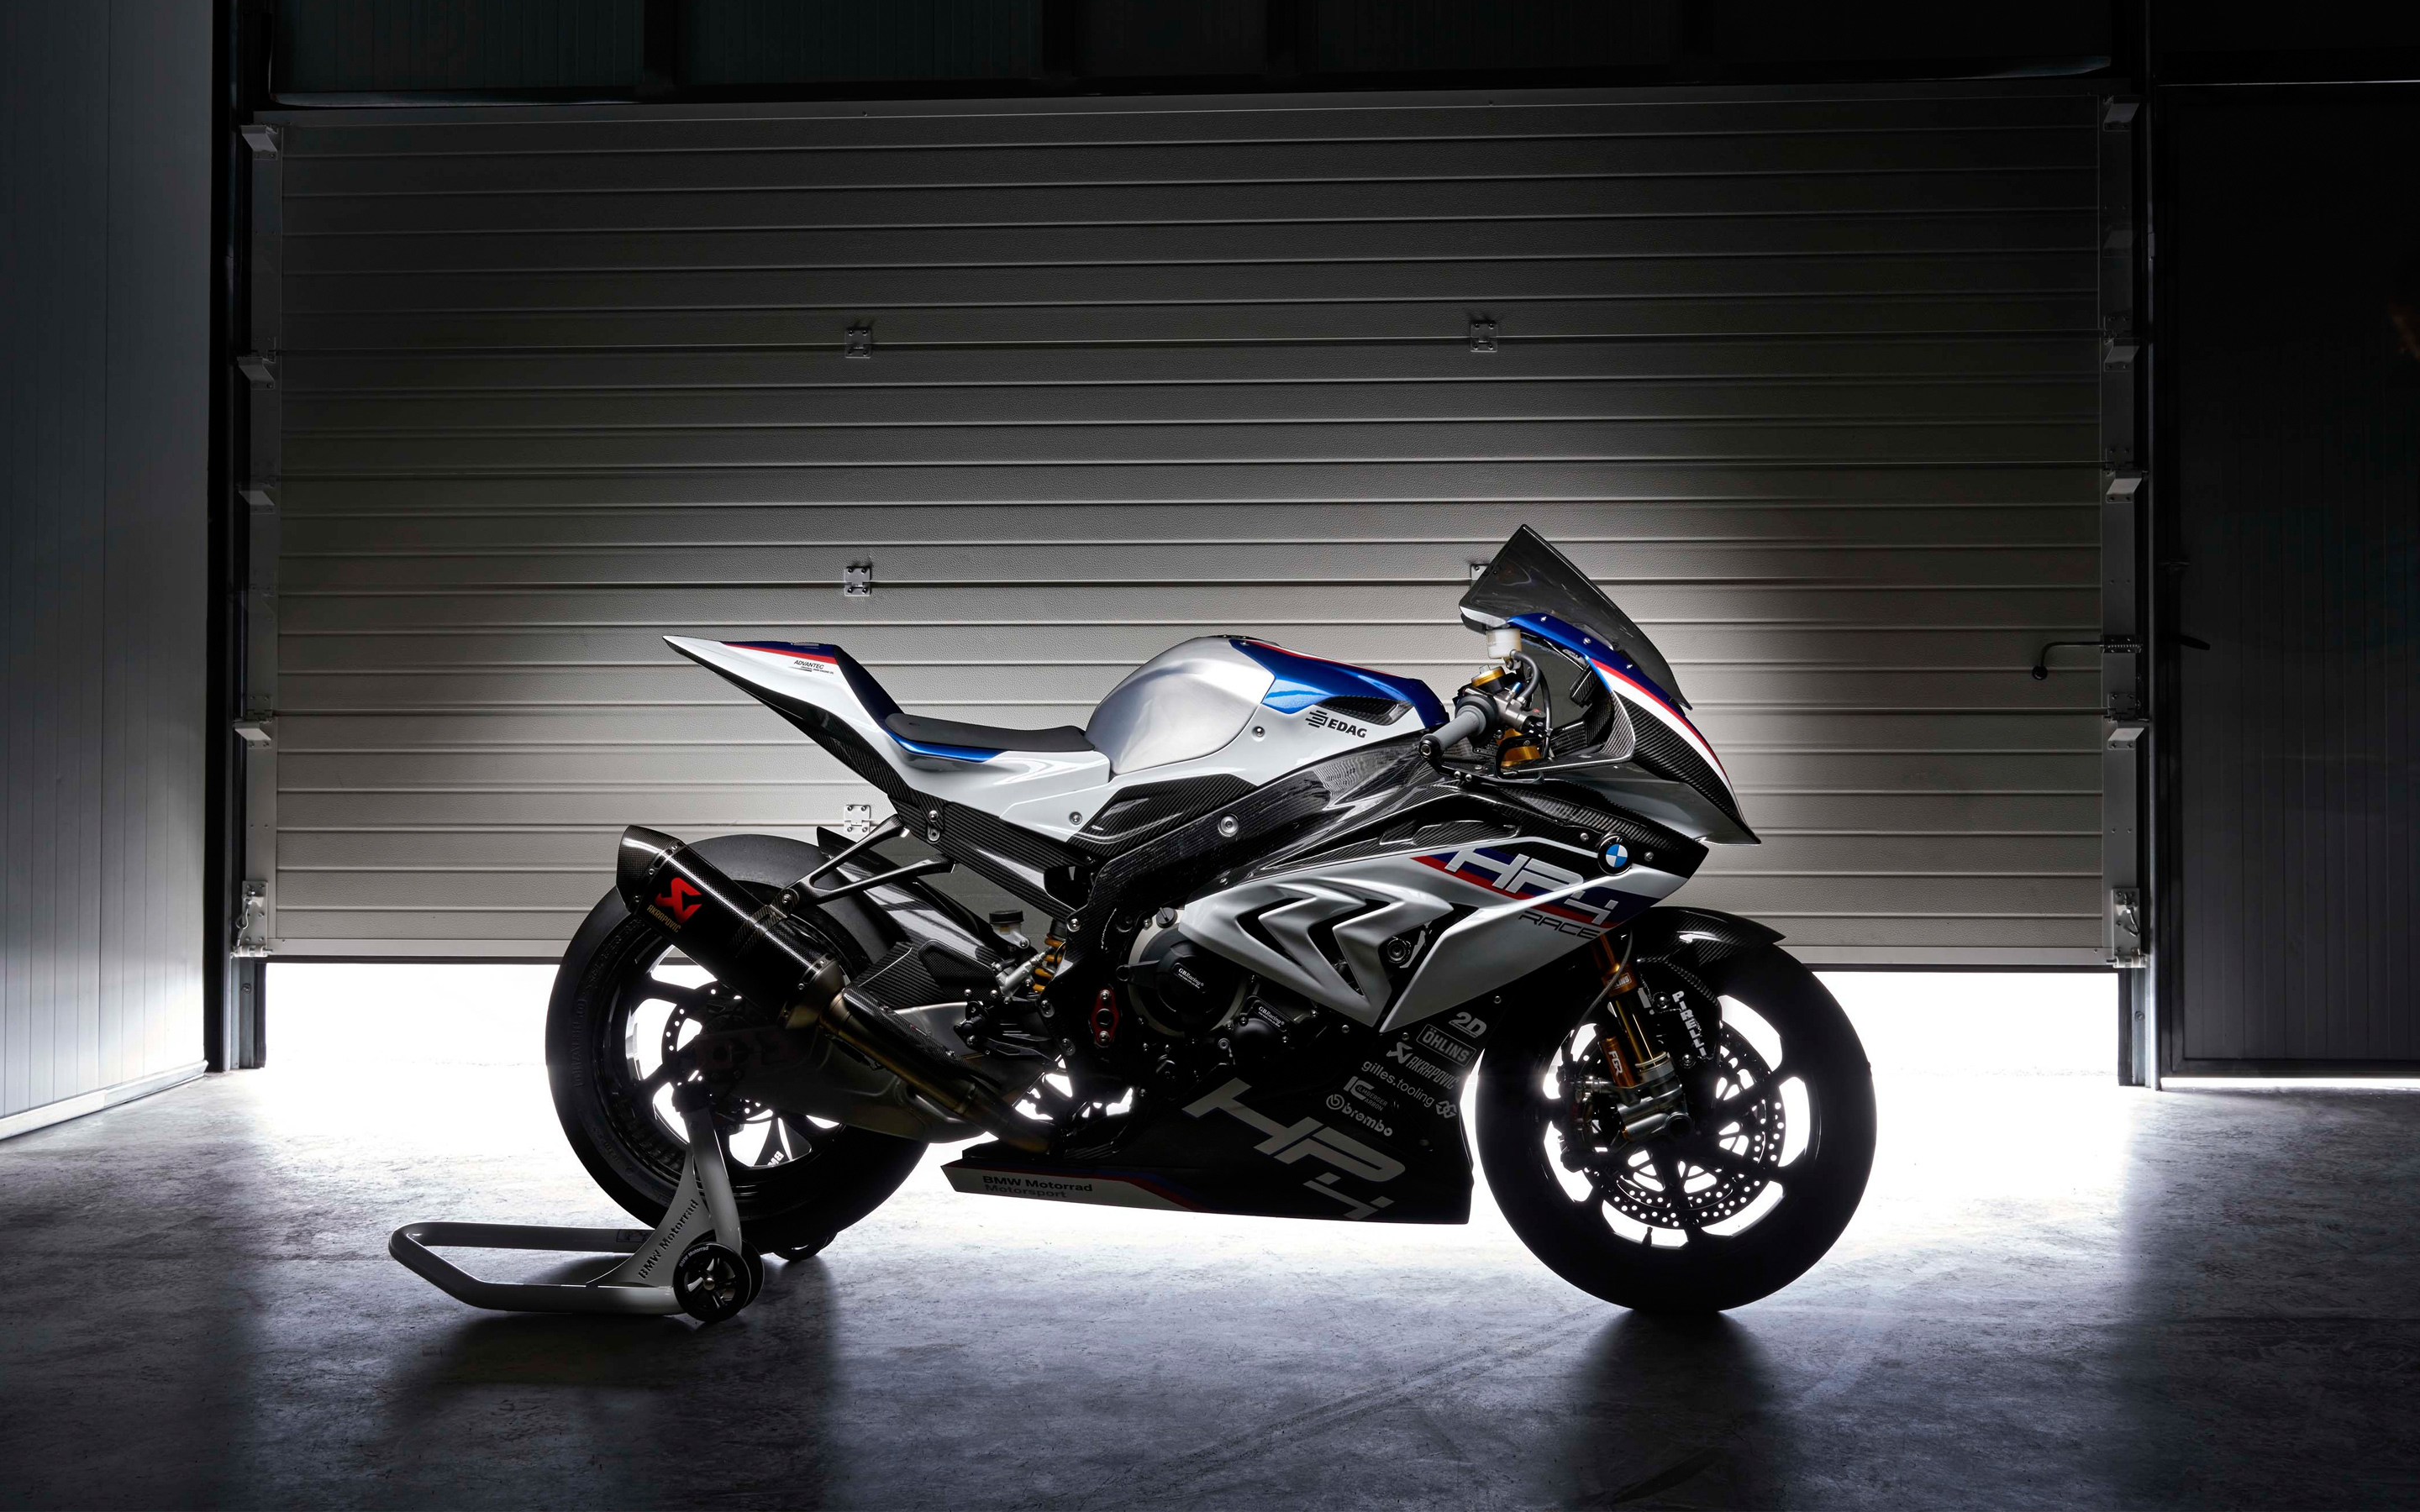 Bmw Hp4 Bike Wide Hd Wallpaper 61257 2880x1800px